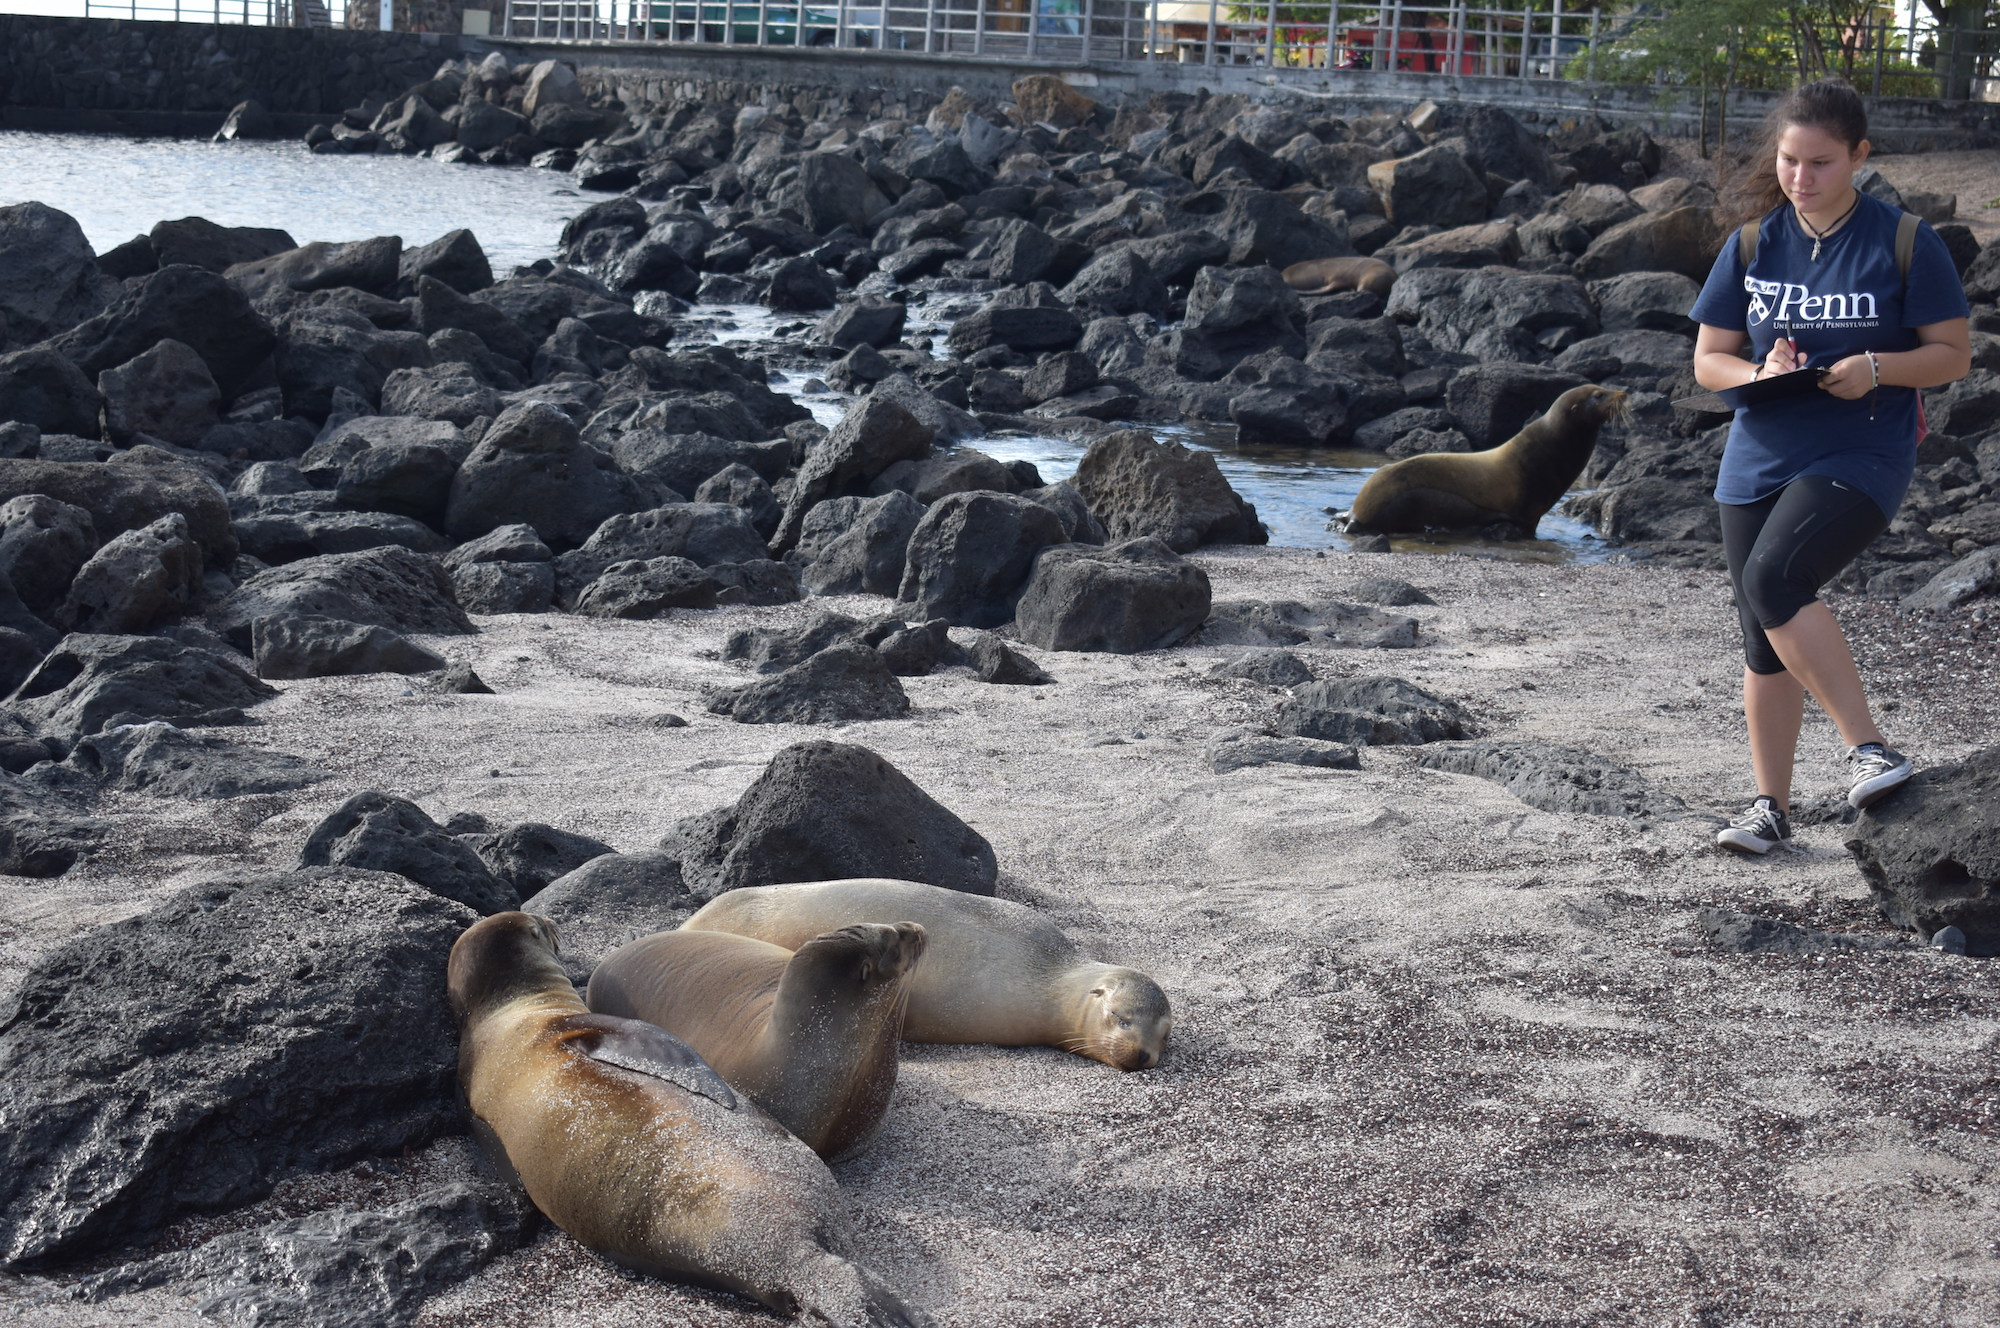 On Galápagos beaches, human presence conclusively affects sea lions